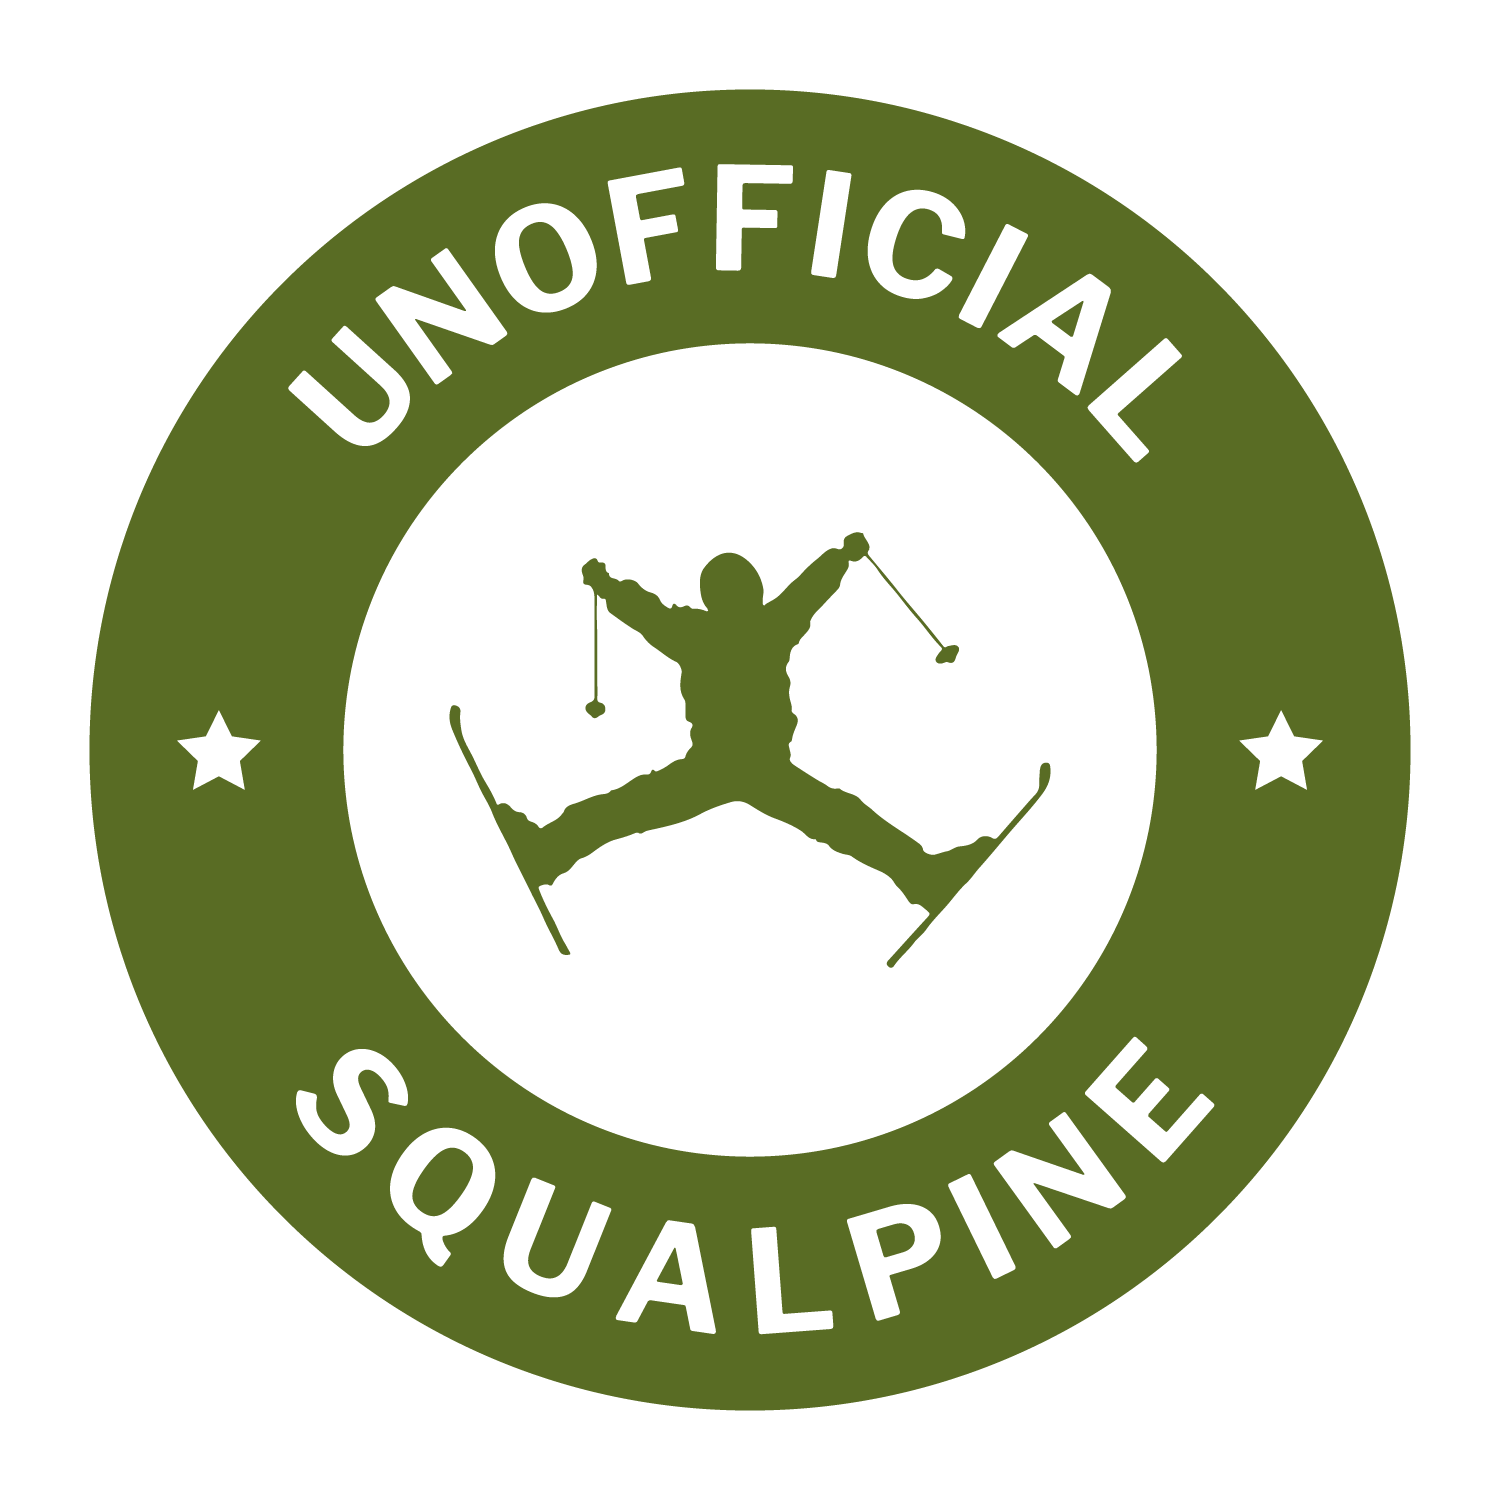 Unofficial SquAlpine